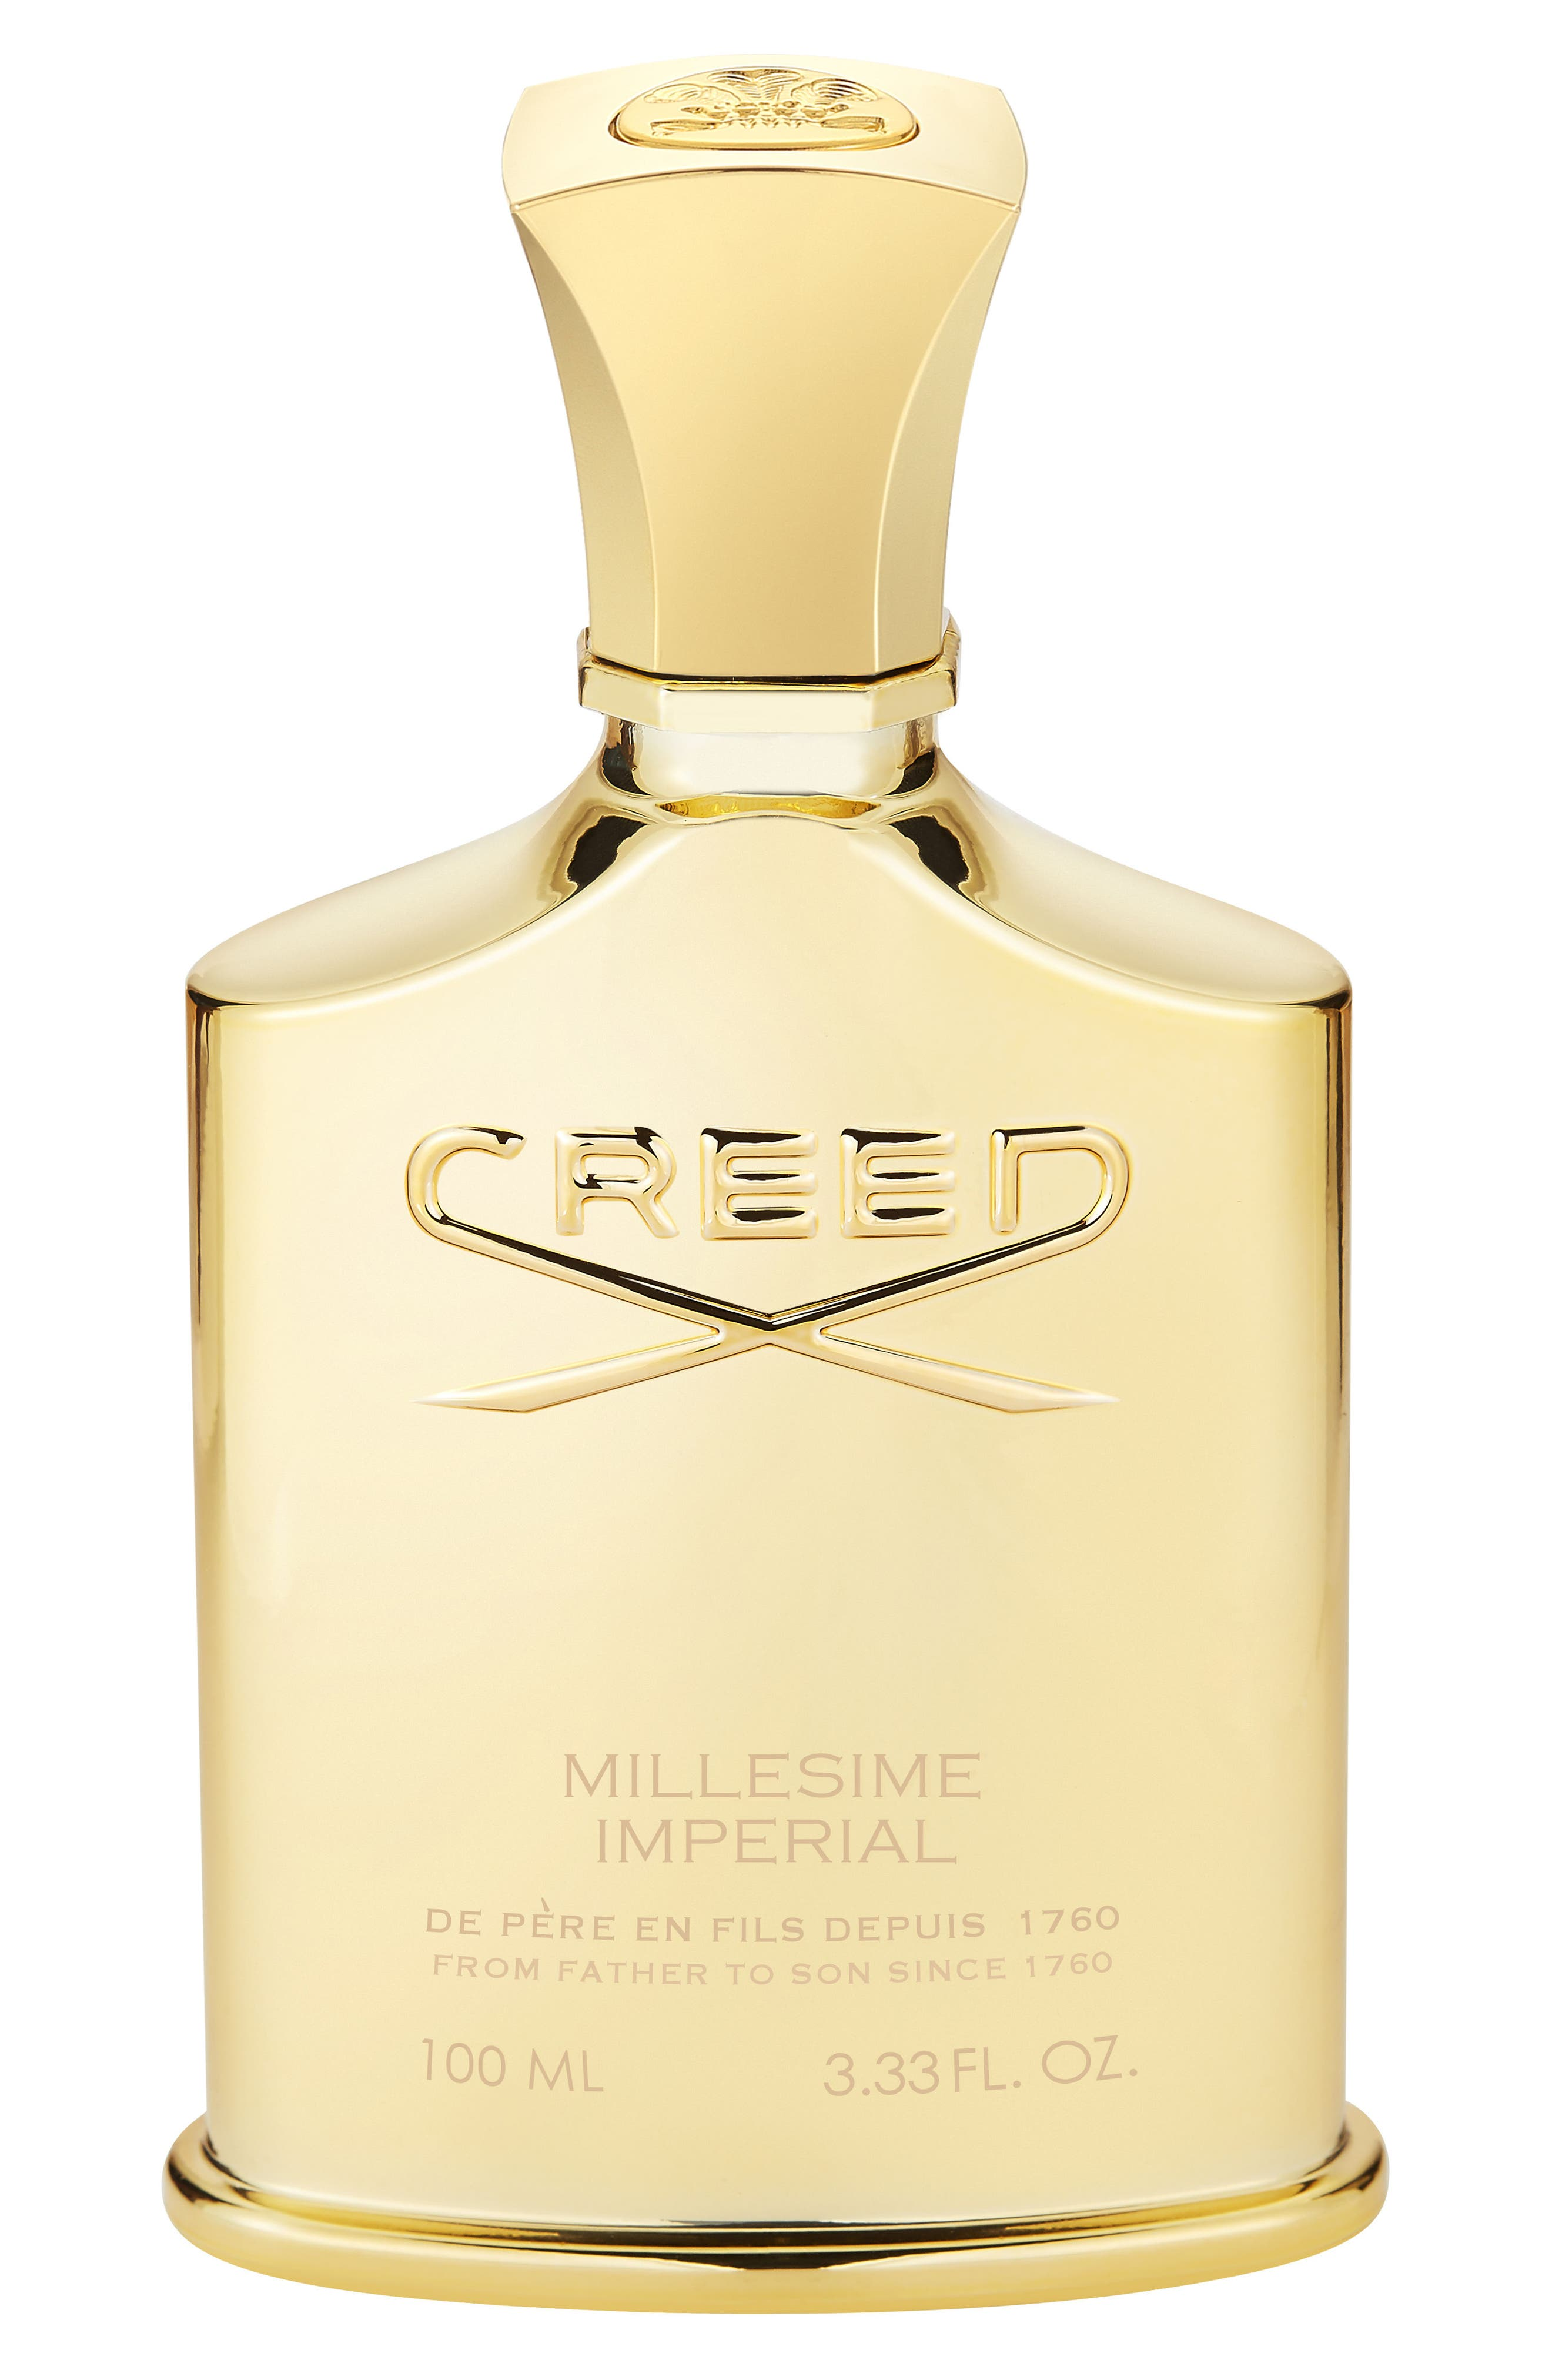 Alternate Image 1 Selected - Creed 'Millésime Imperial' Fragrance